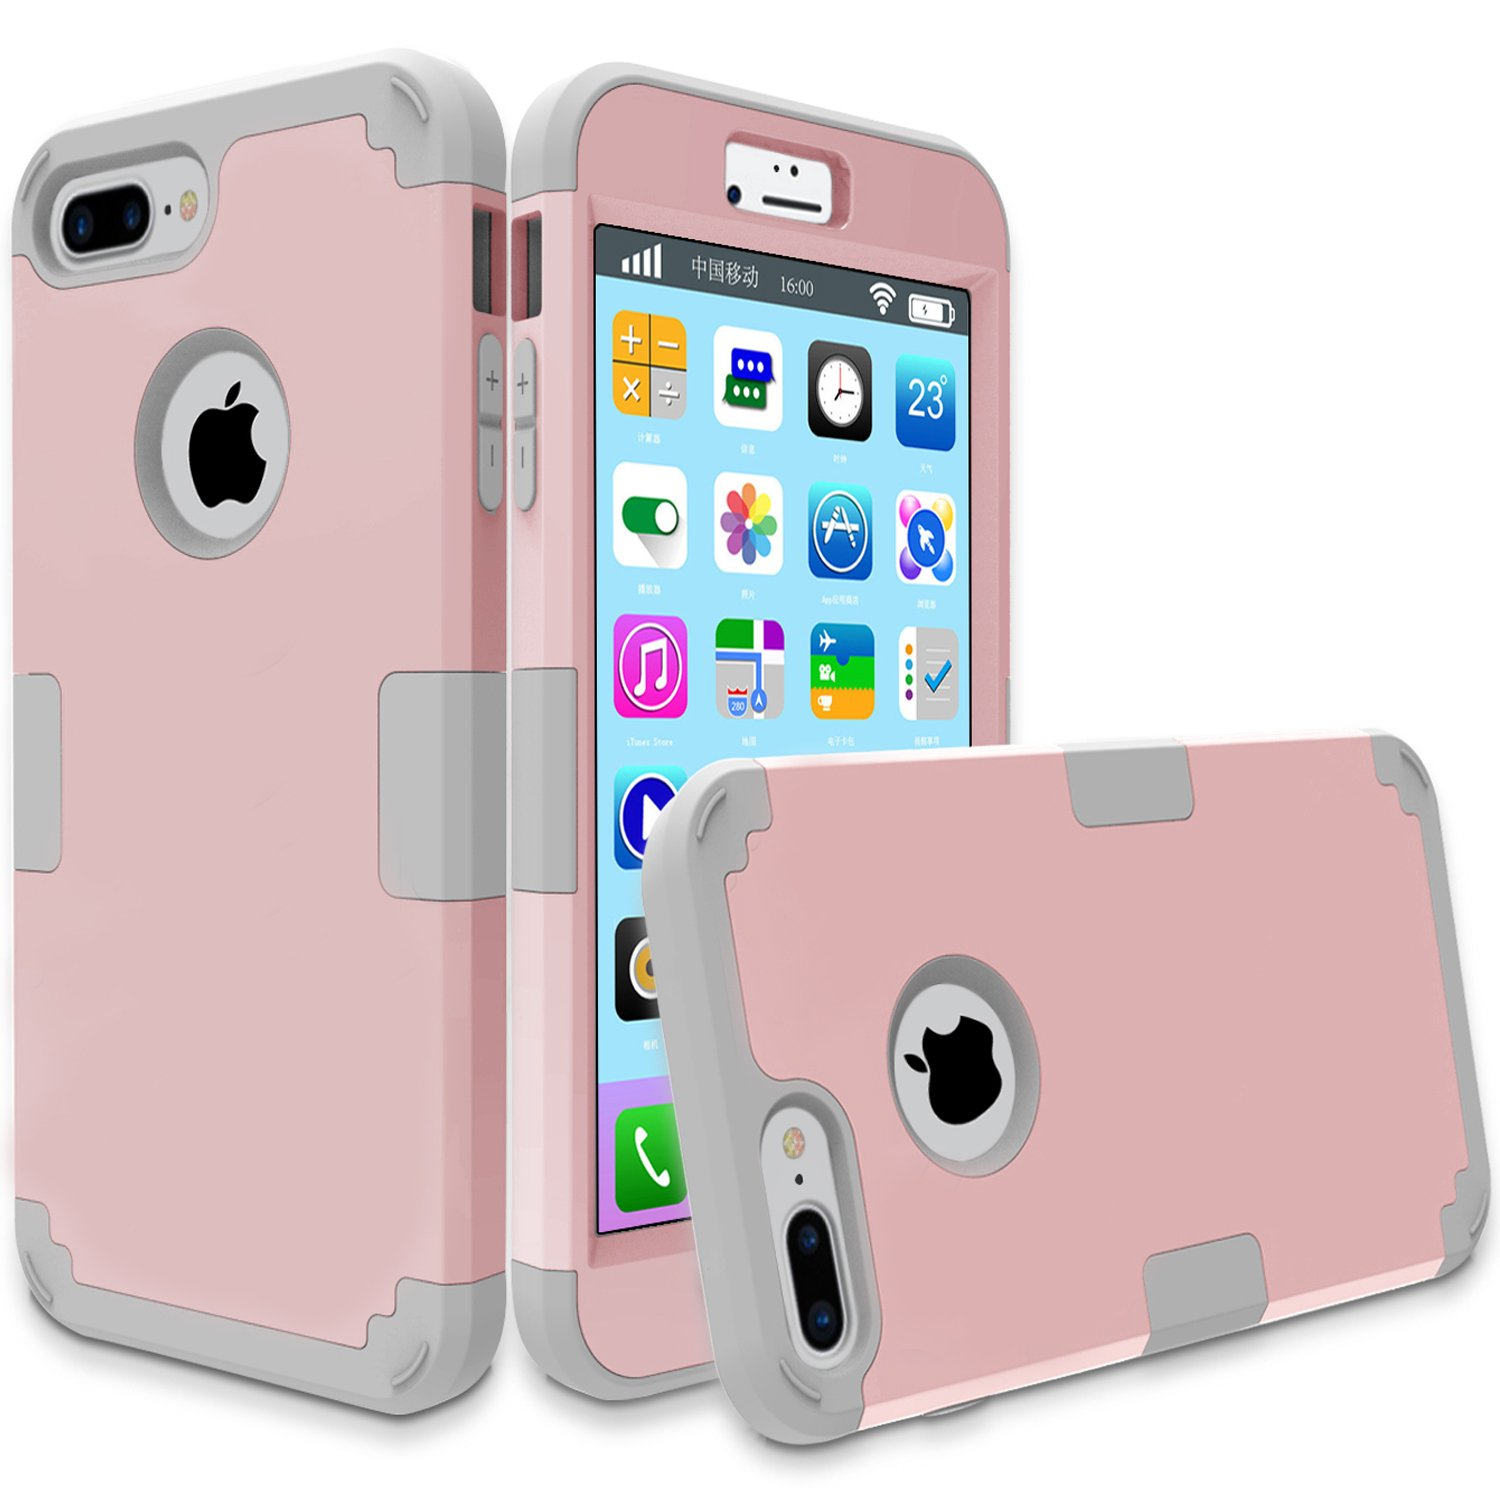 iPhone 7 Plus 3 in1 Cases B01MSZQFOF A-Rose gold-Grey A-Rose gold-Grey